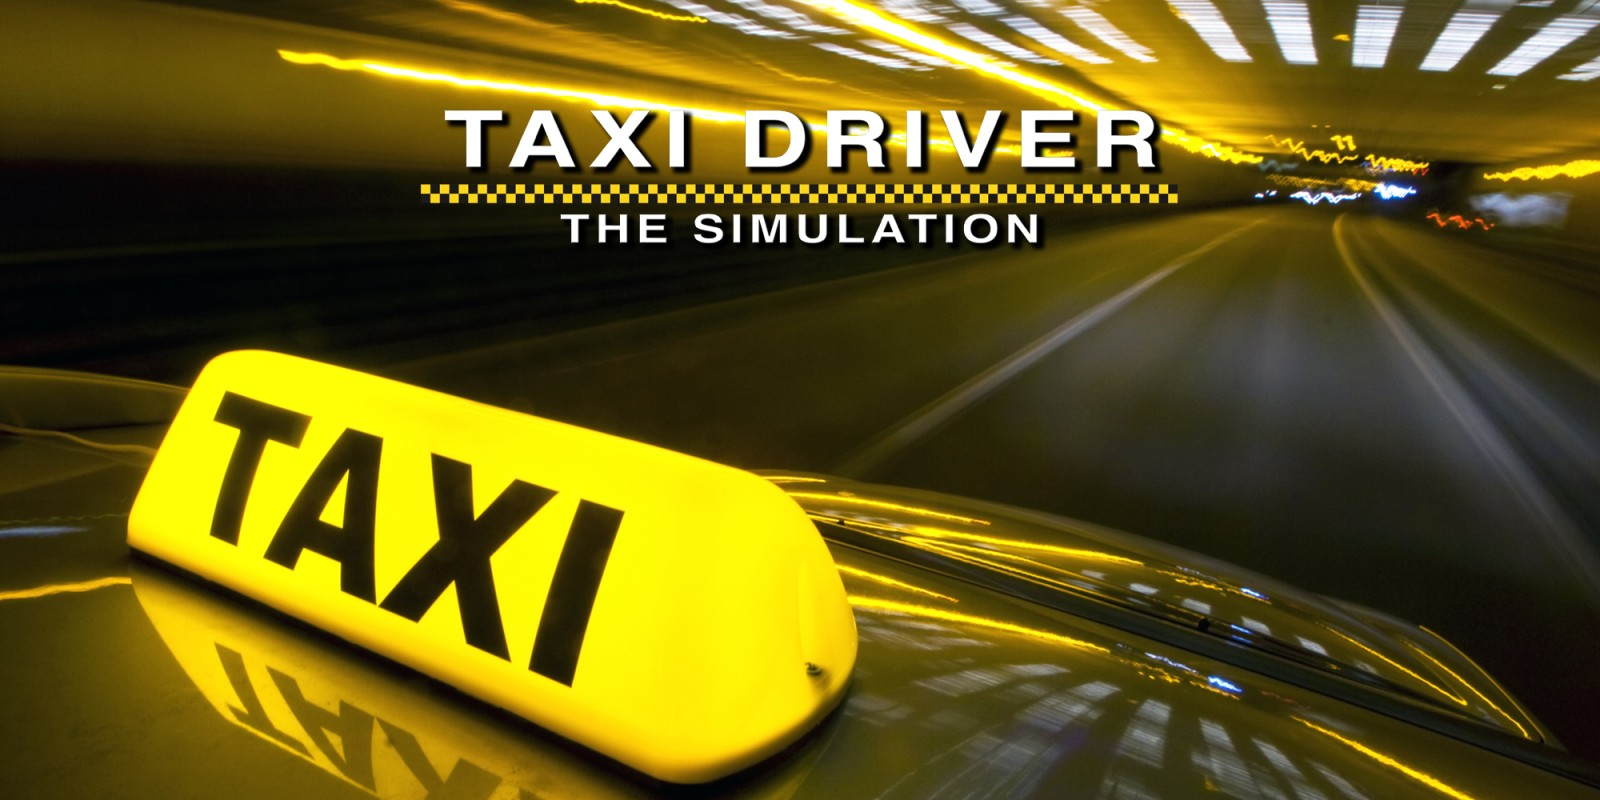 Taxi Driver - The Simulation